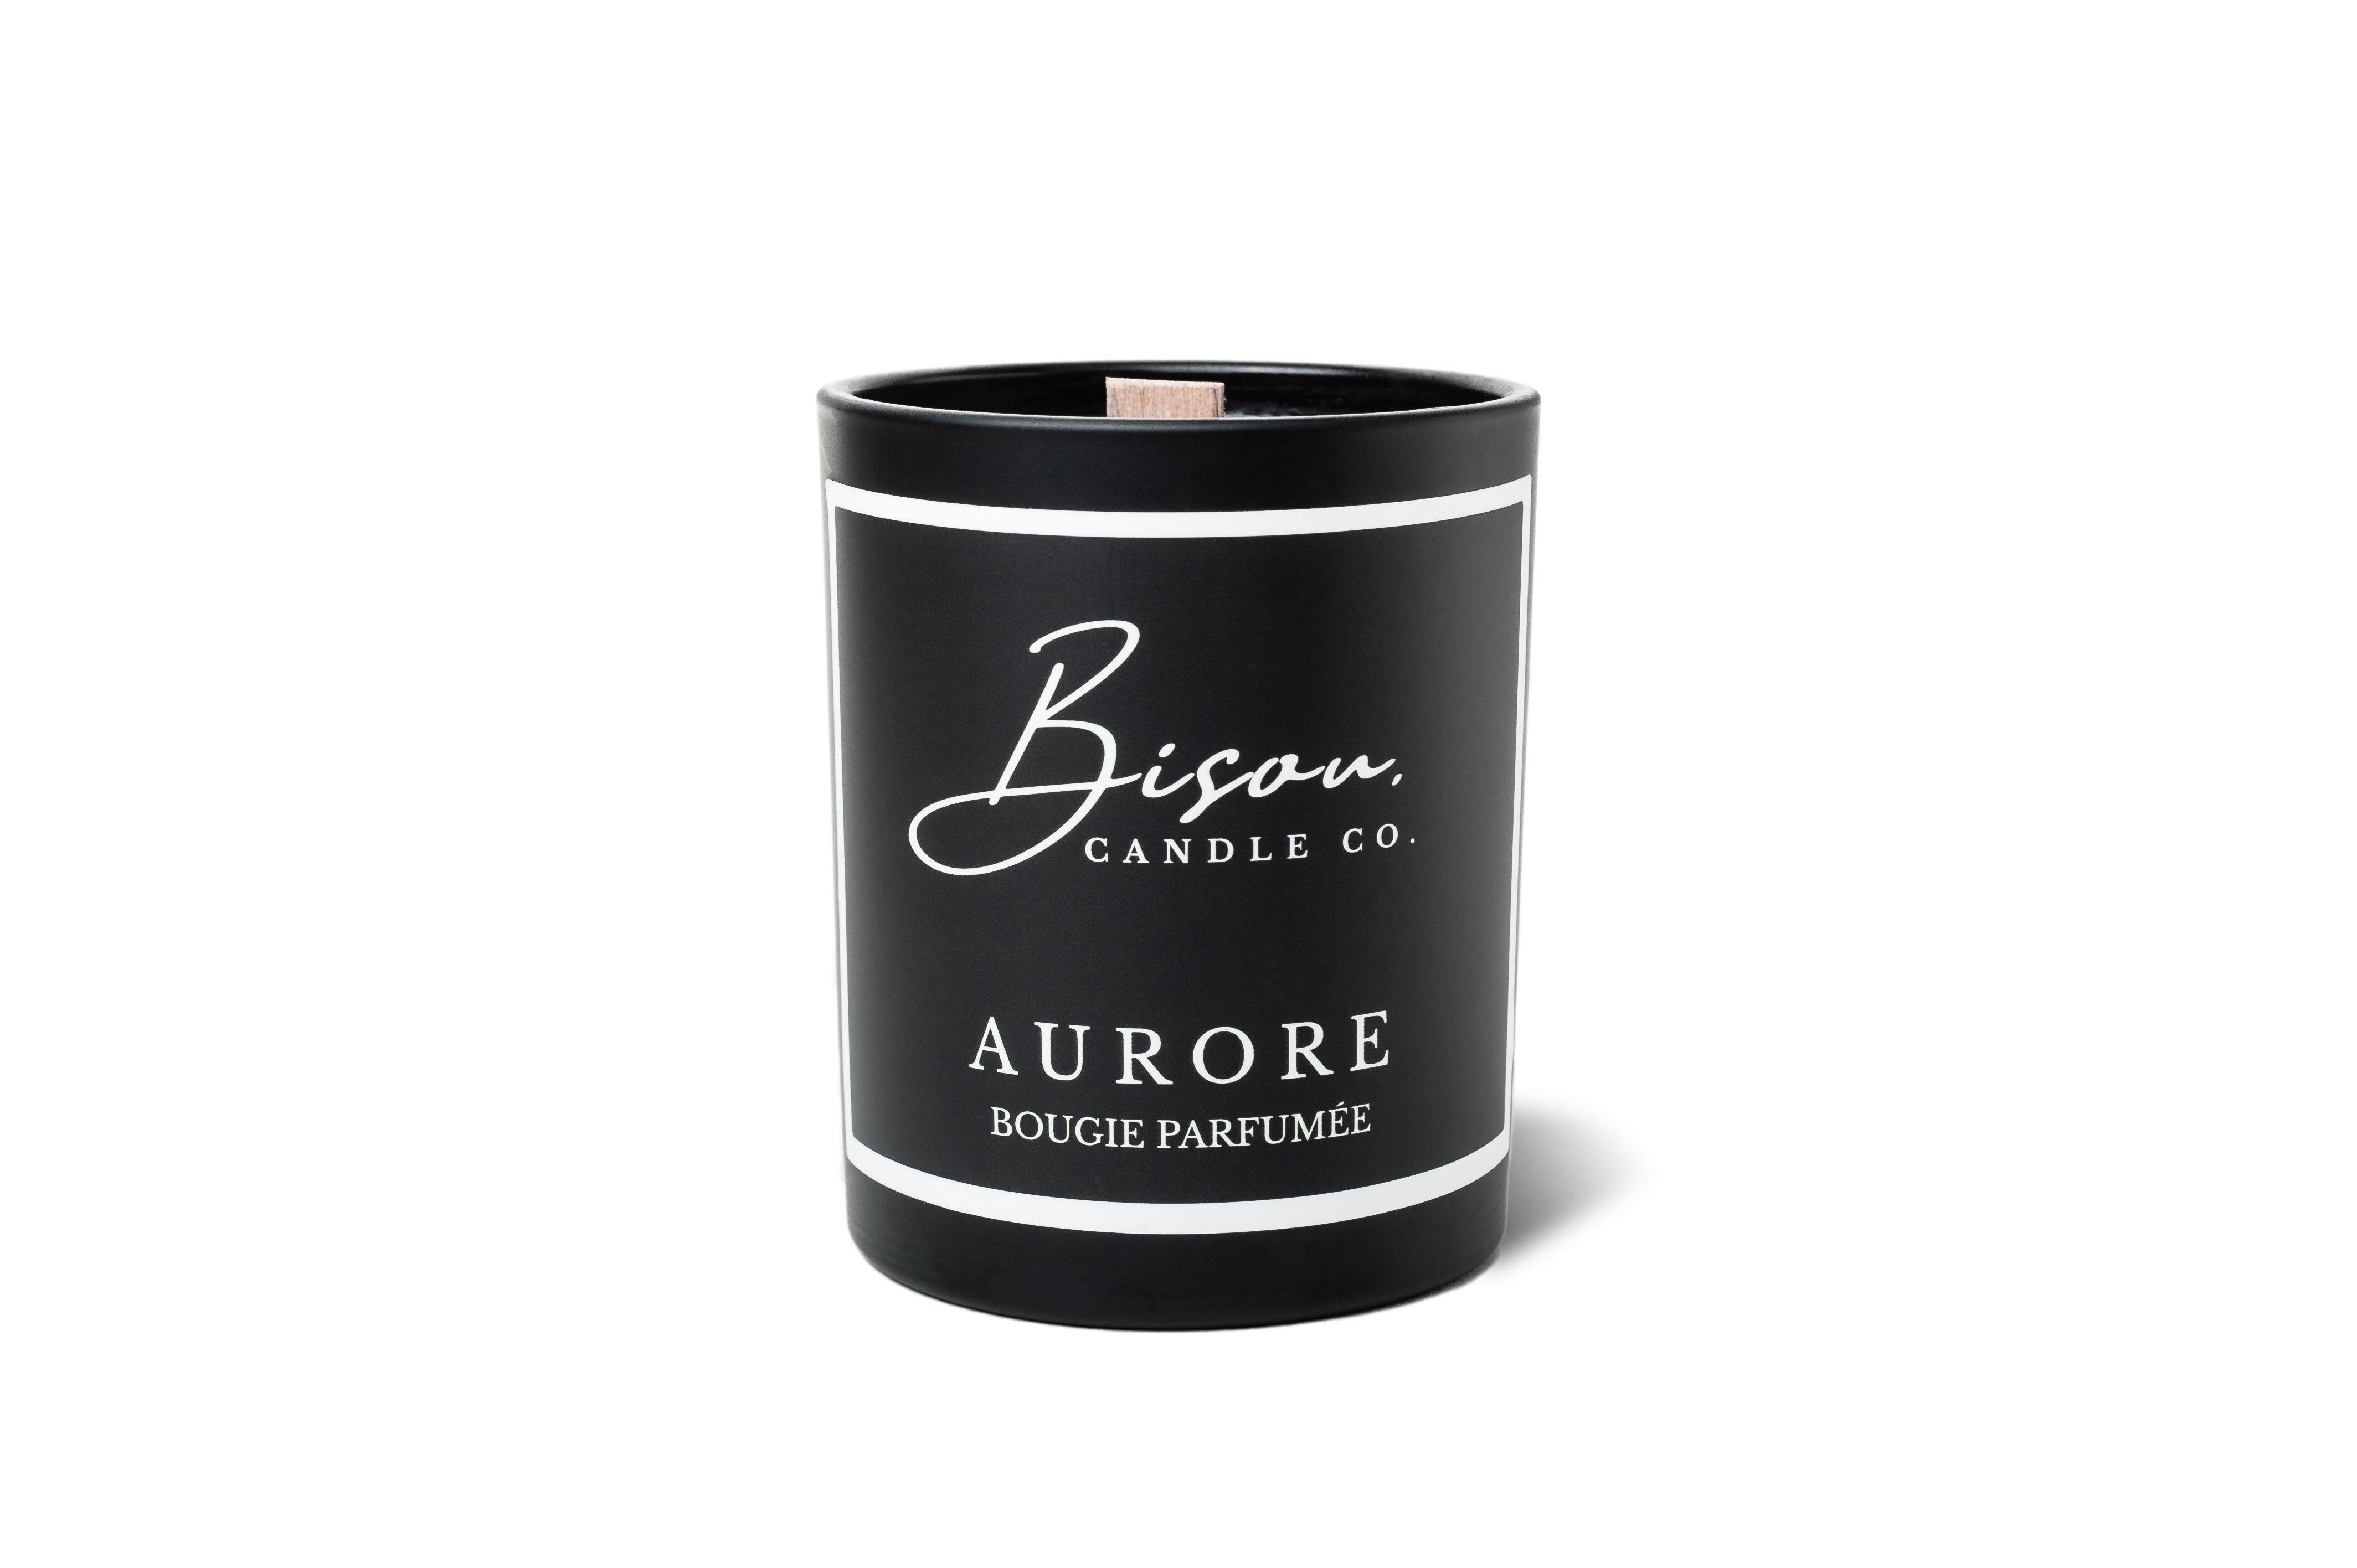 The scent of the month: Aurore - Basil and Neroli Blossom